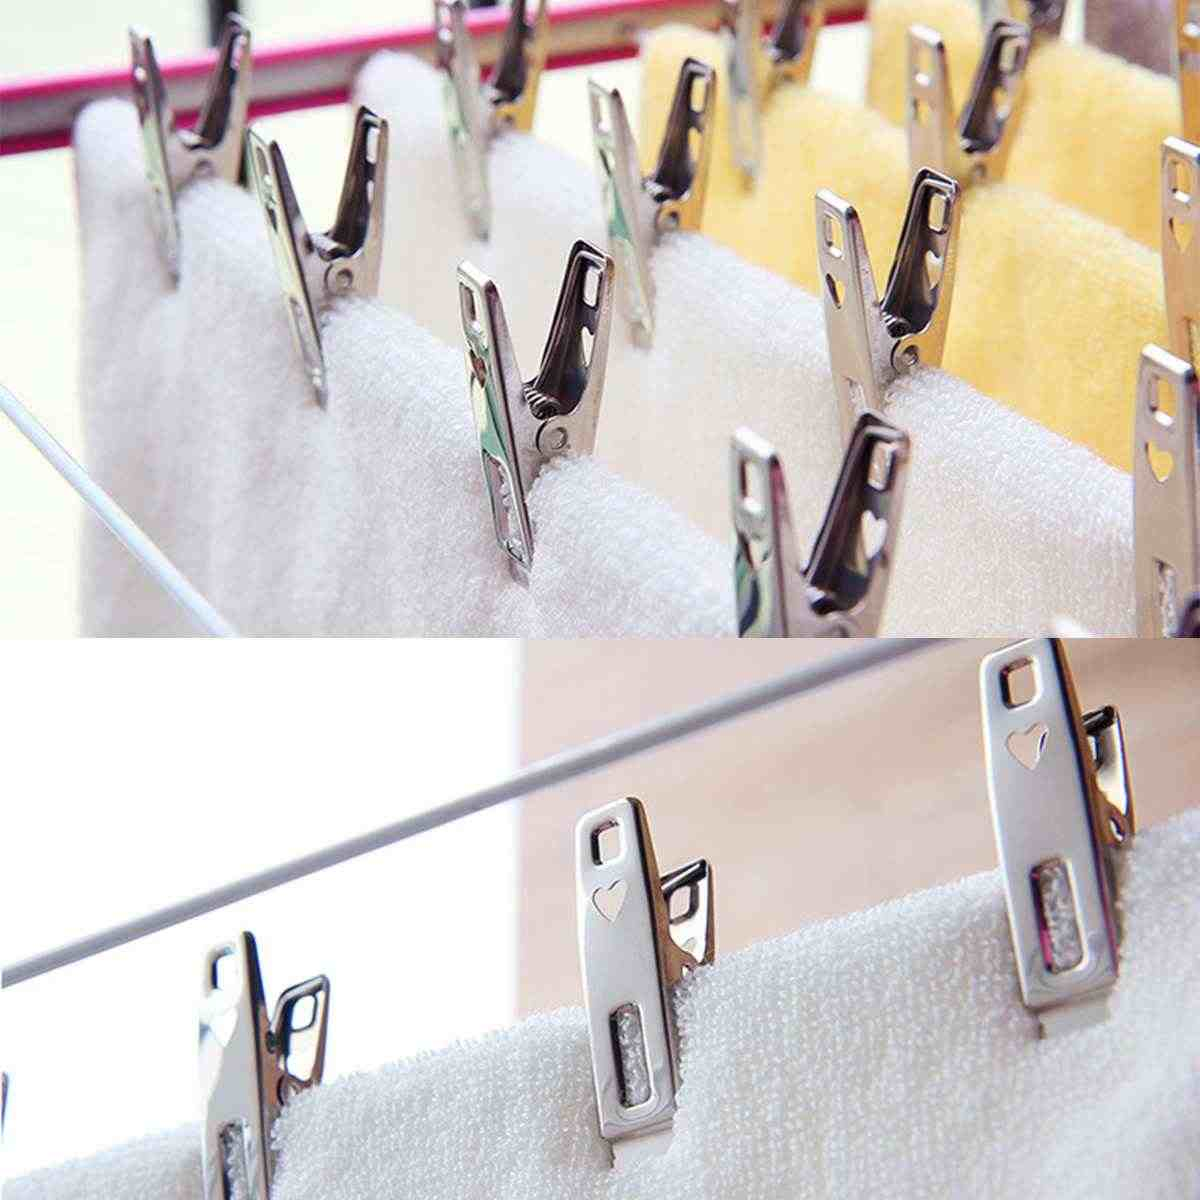 20pcs Stainless Steel Clothes Pegs File Metal Clips Coat Pants Hanger Rack Washing Food Sealing Clip Office School Supplies